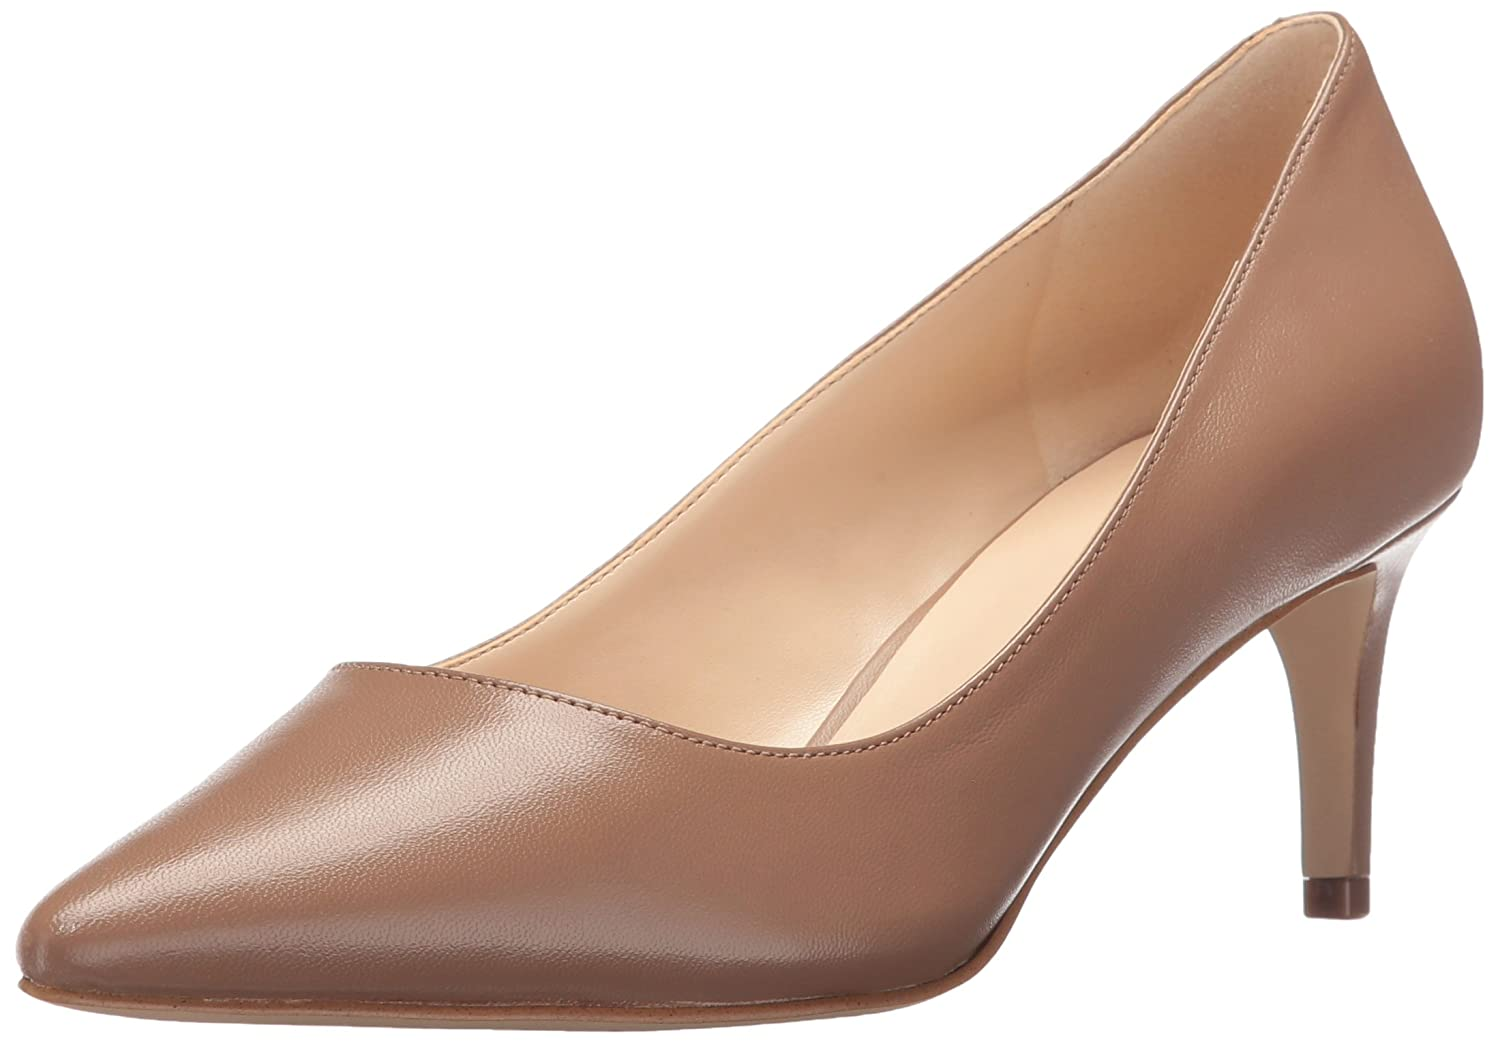 Nine West Women's Smith Leather Dress Pump B01LXTIMBR 6.5 B(M) US|Natural